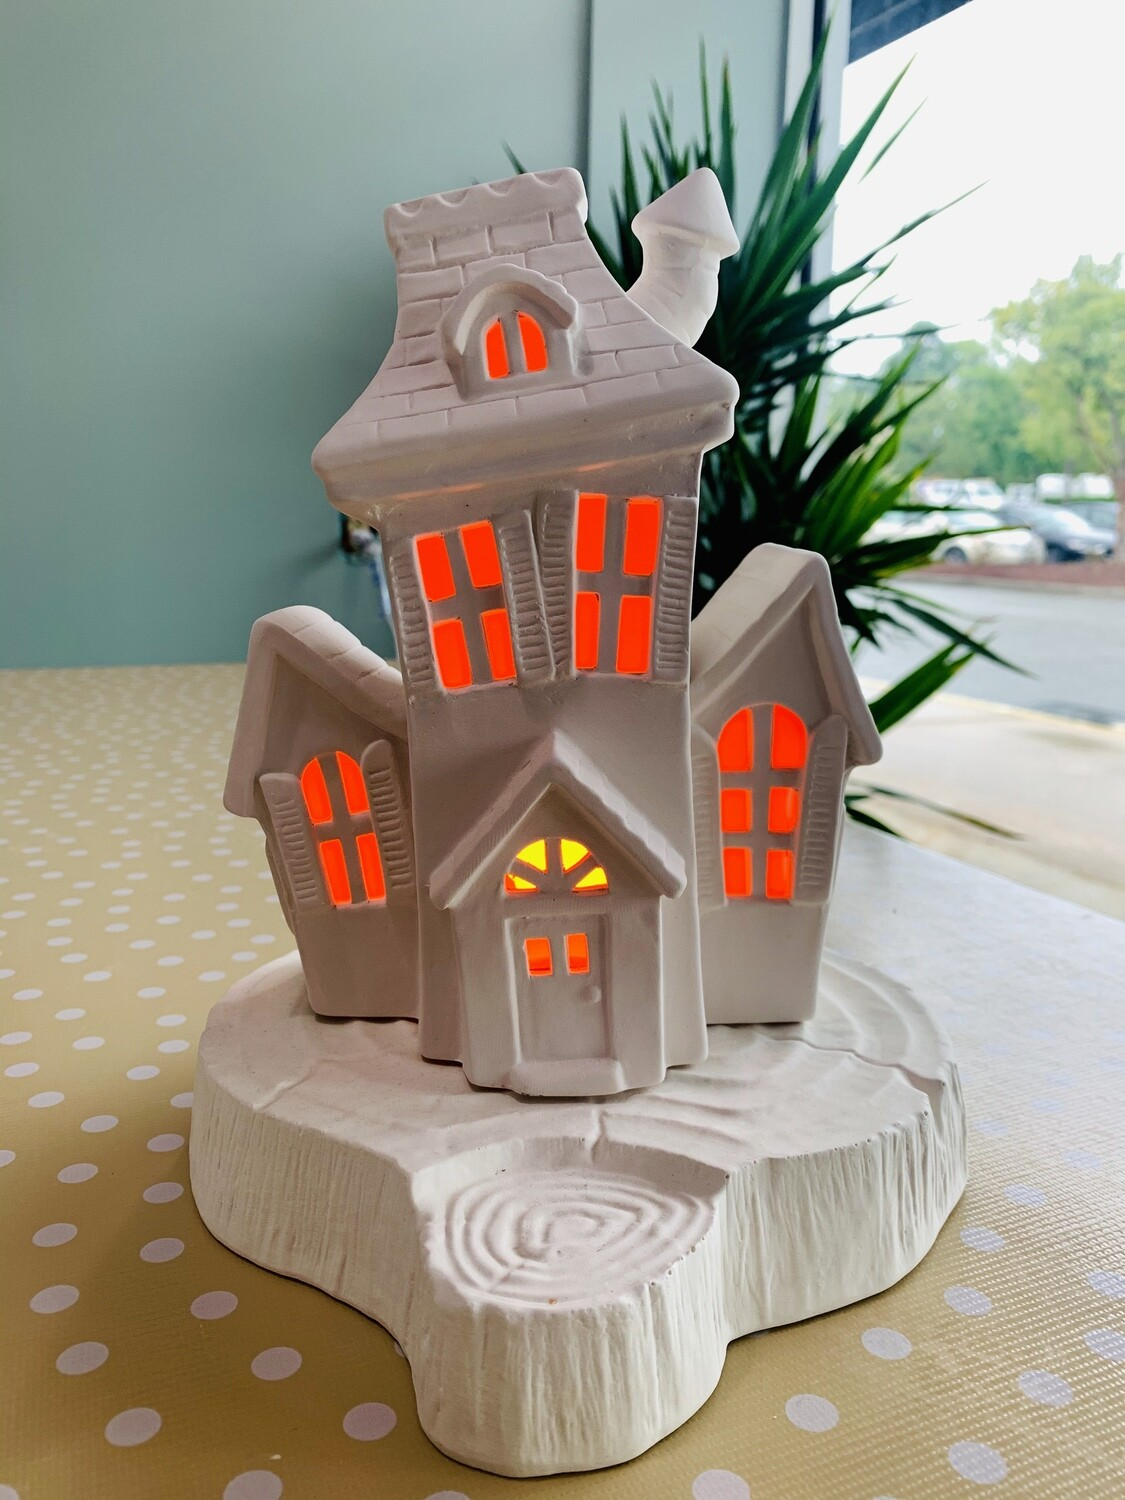 Light up Haunted House with light kit (Base sold separately)